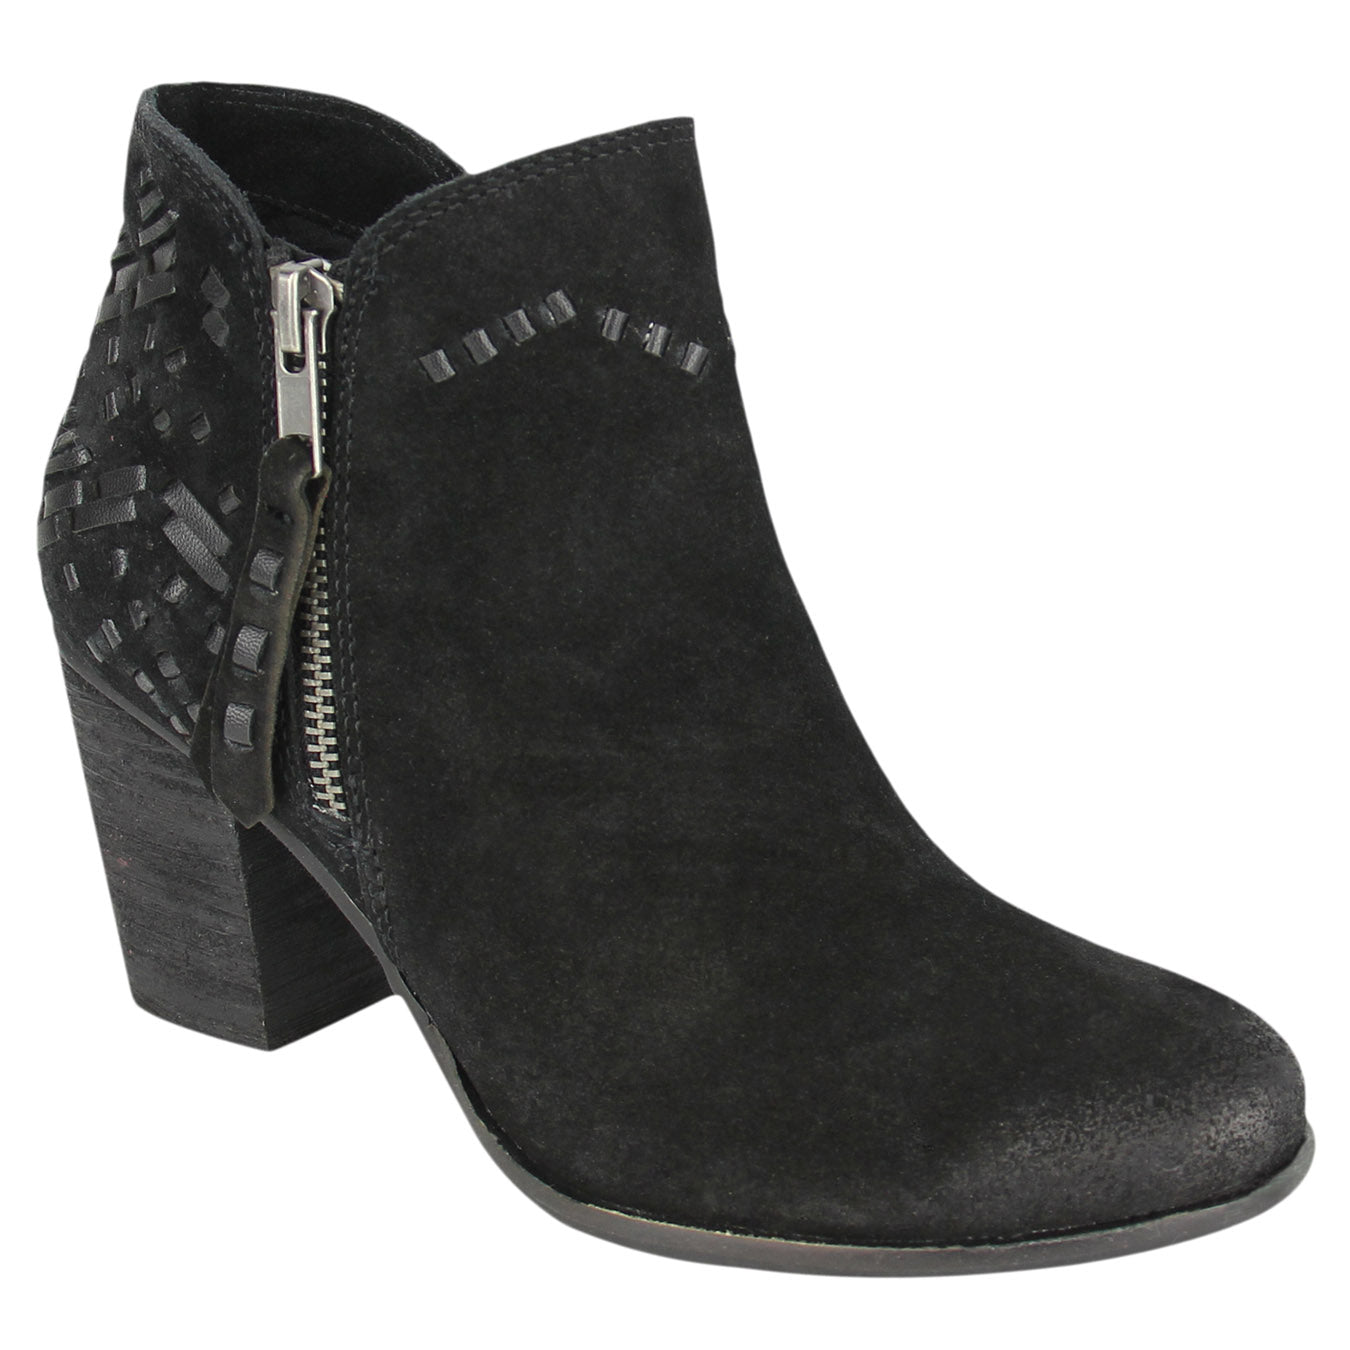 NAUGHTY_MONKEY_HAND-CRAFT_BOOT_SUEDE_BOOTIE_LUPINA_BLACK